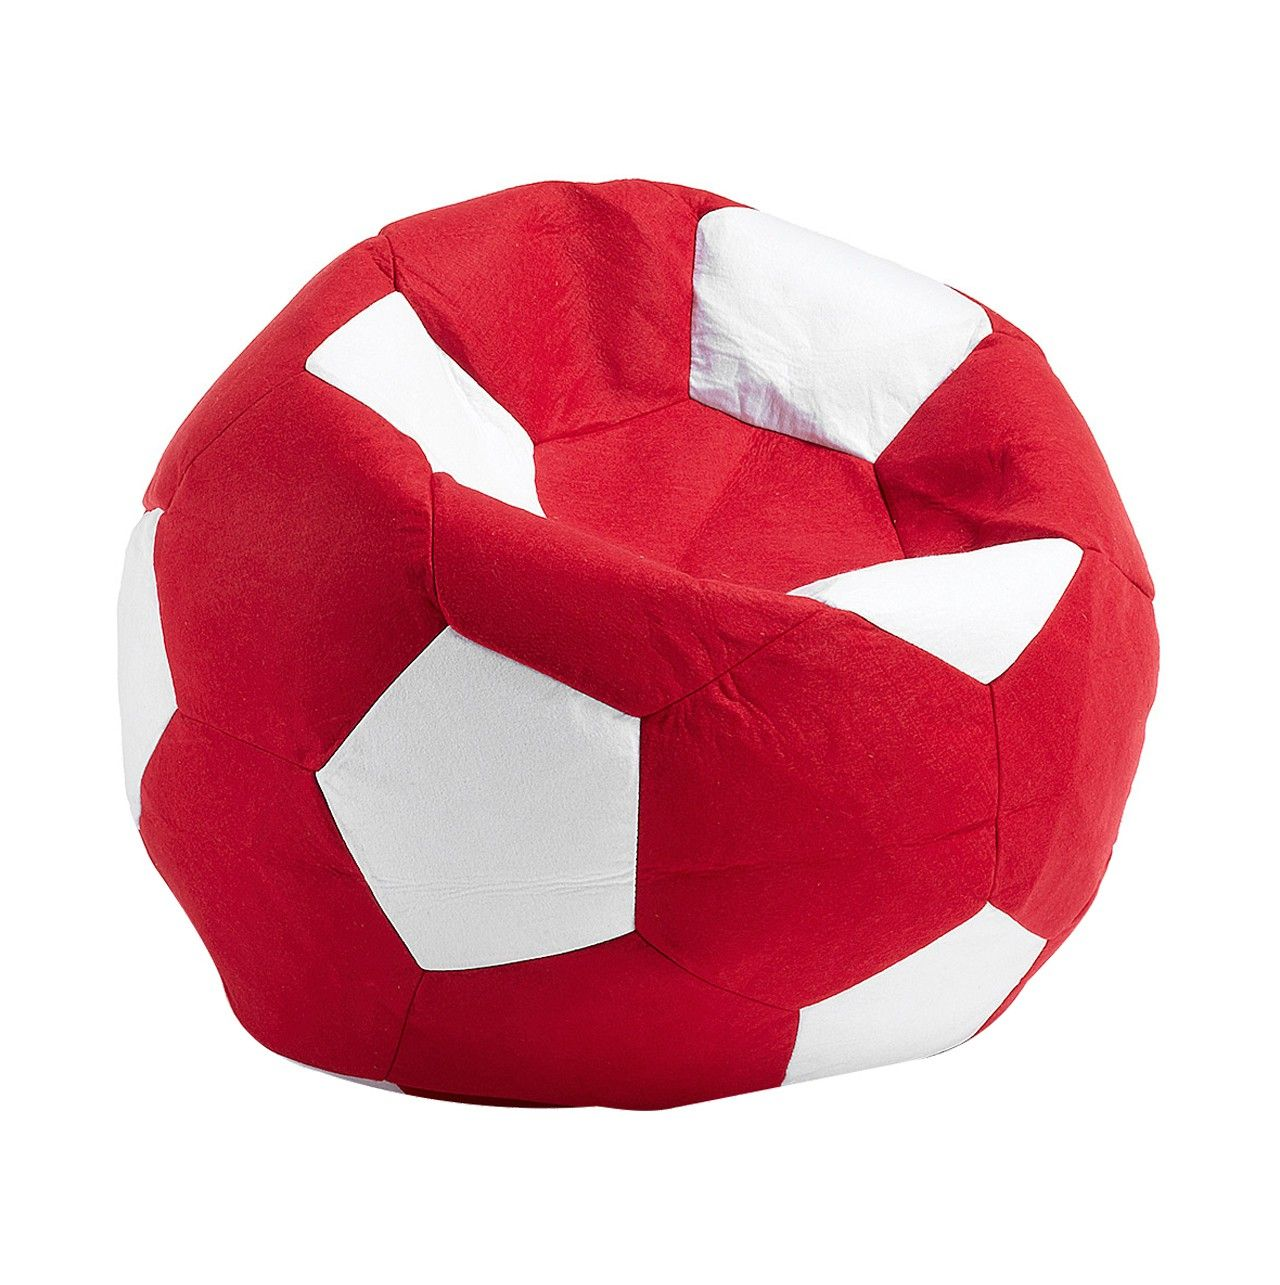 Relleno puff ikea full size of pillows best pillow for Relleno puff ikea